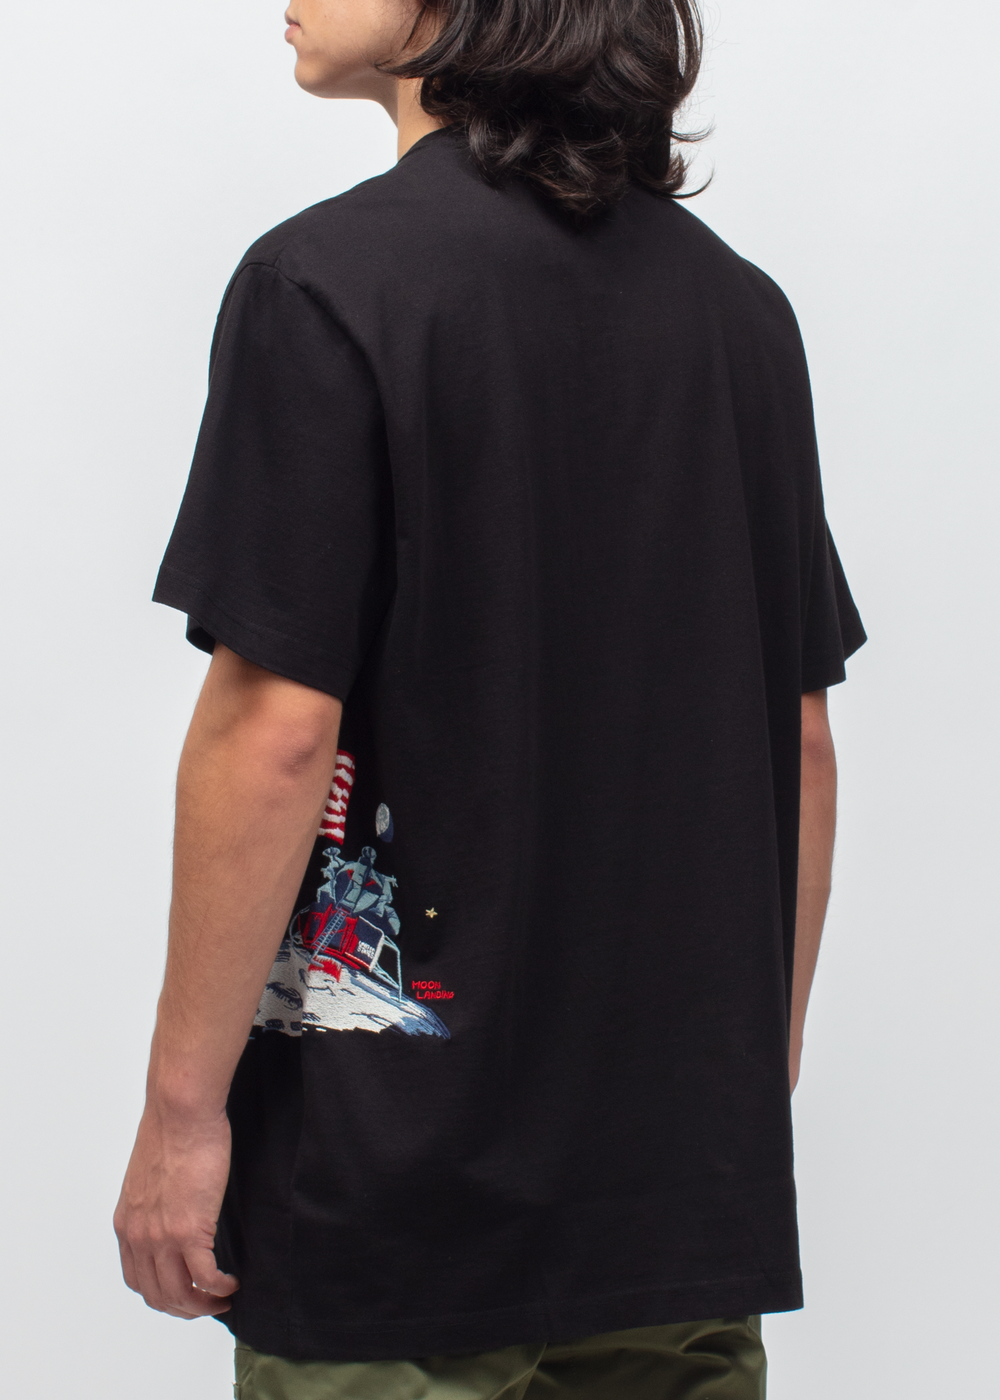 billionaire-boys-club-moonwalk-ss-tee-891-6310-blk-blk-3